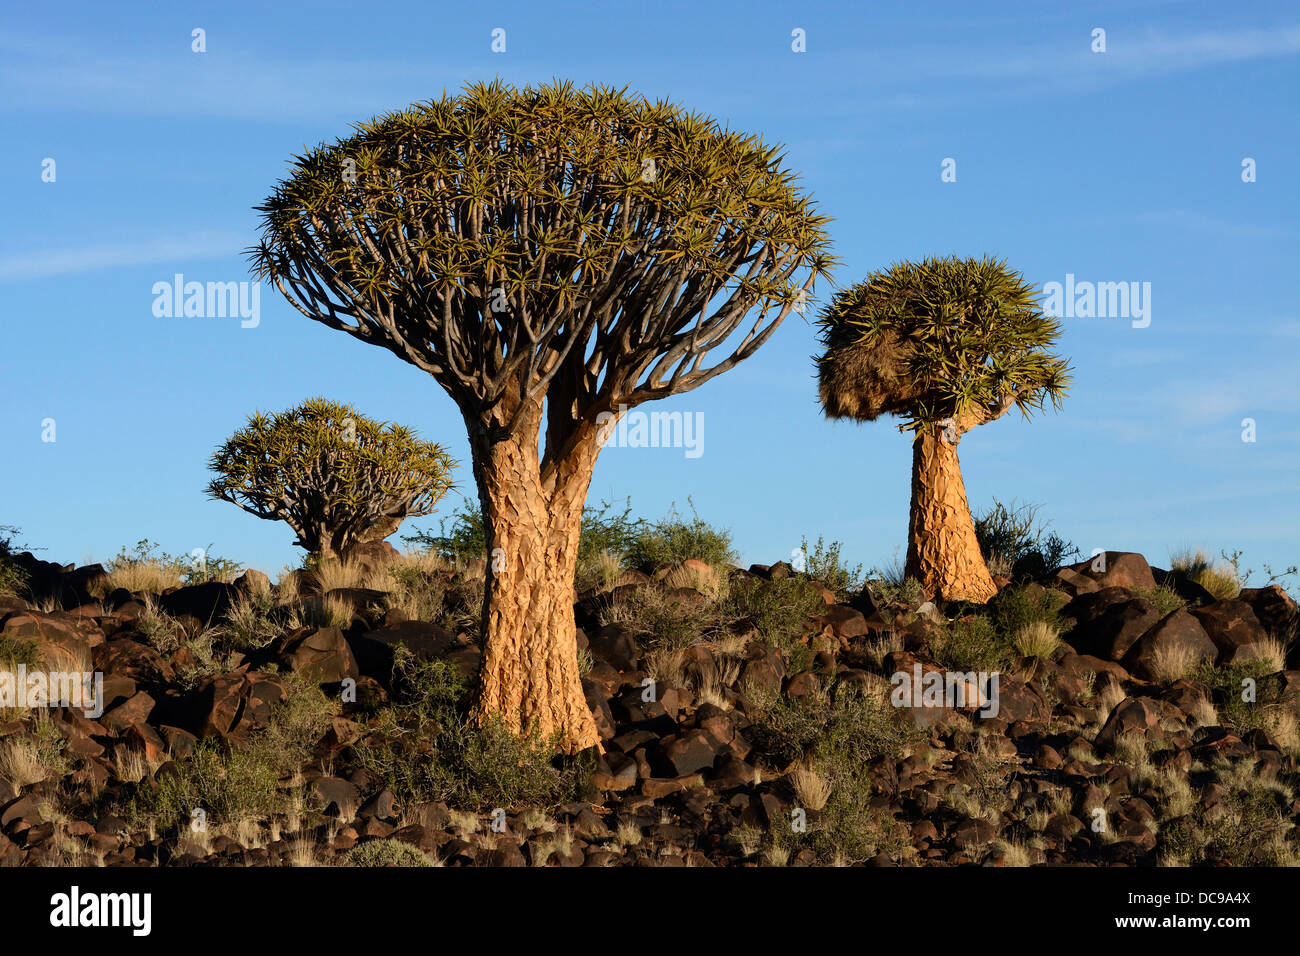 Arbres carquois ou Kocurbooms (Aloe dichotoma), Quiver Tree Forest Photo Stock